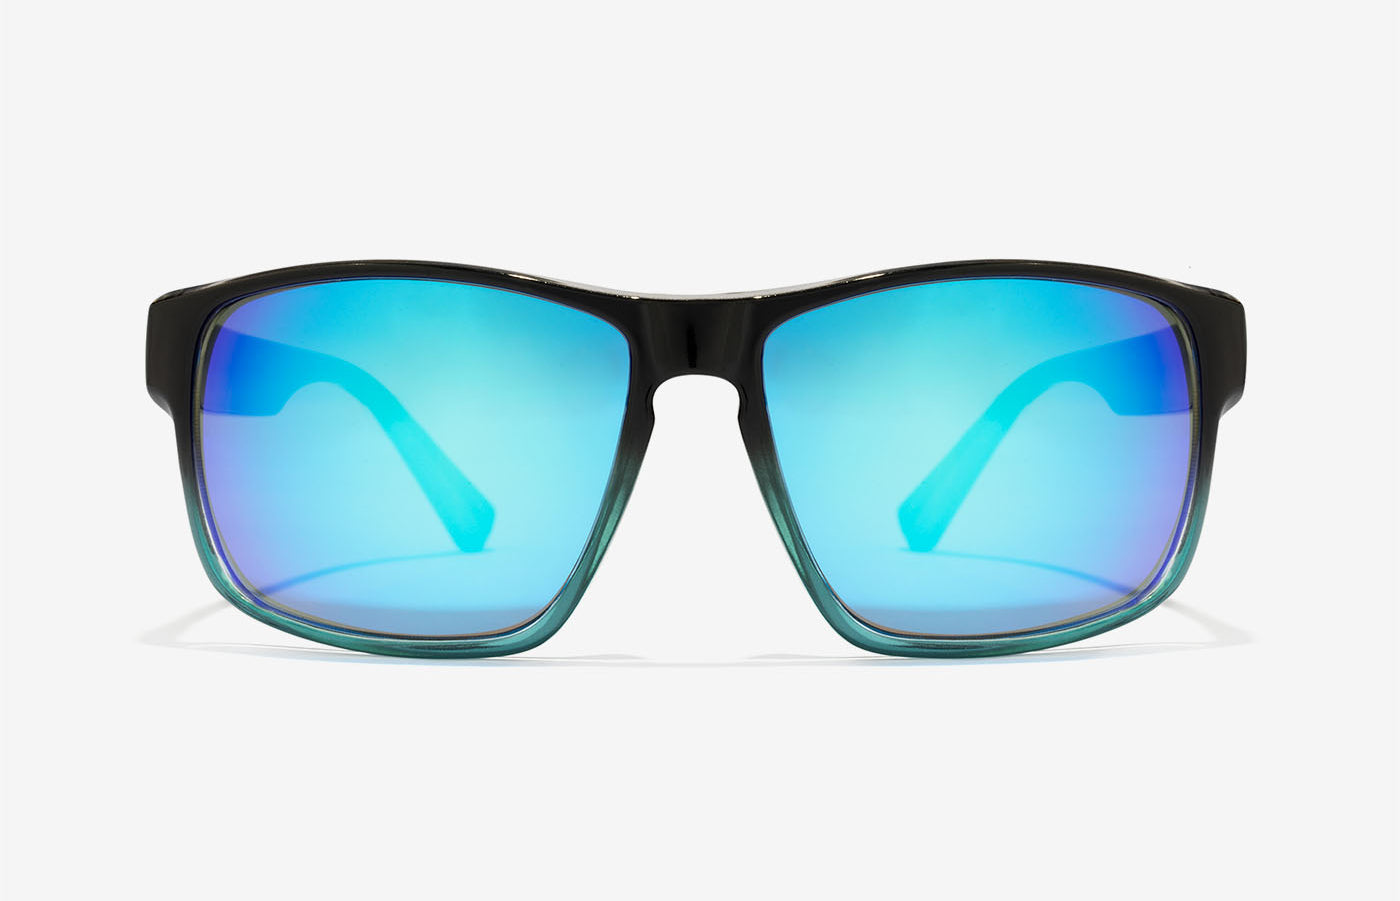 d9380dd841 Gafas de sol rectangulares   Fusion Clear Blue Faster   Hawkers CO